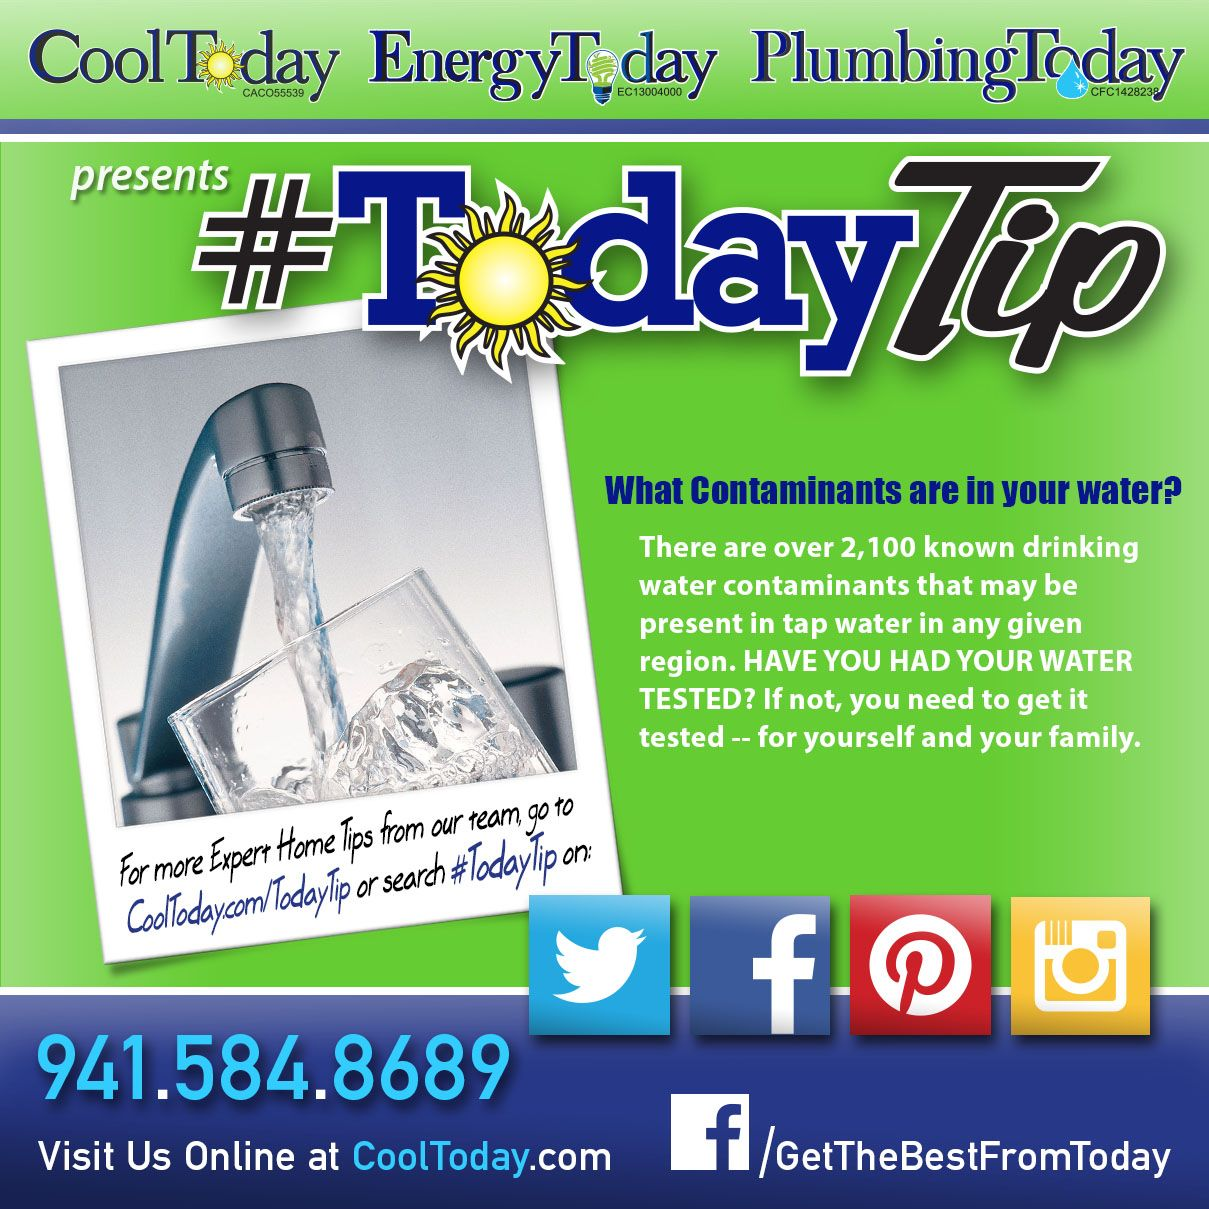 Your water could be full of contaminants! #TodayTip#CleanWater#Water#FamilySafty